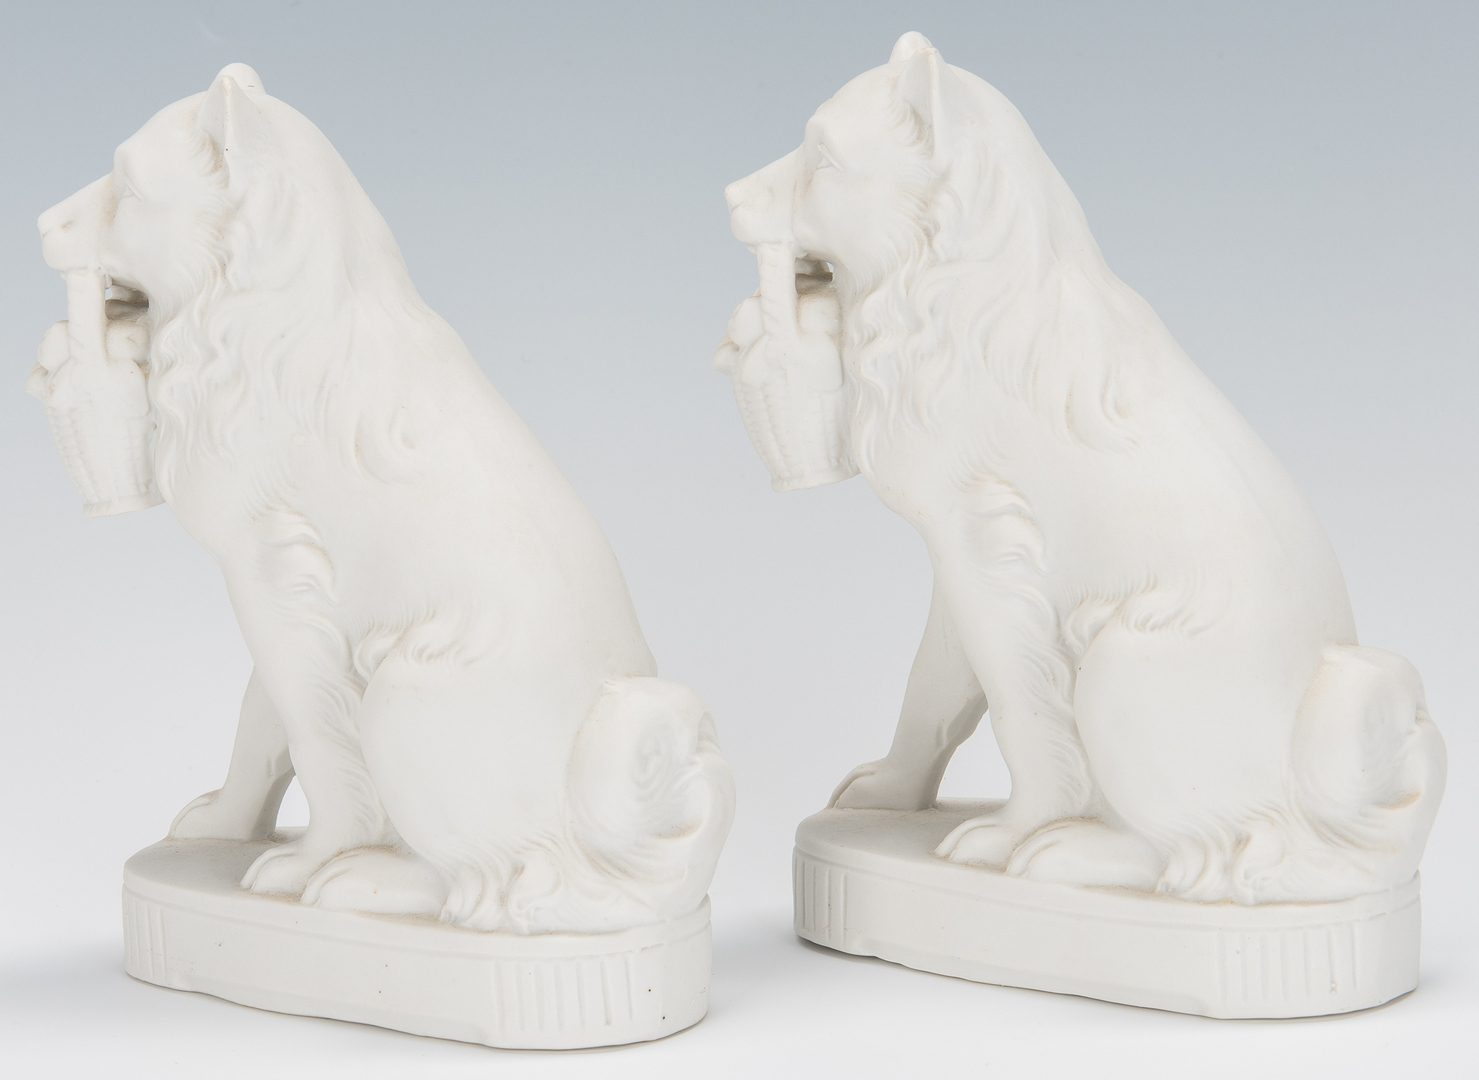 Lot 329: Group of 6 Parian Ware Dog Figures